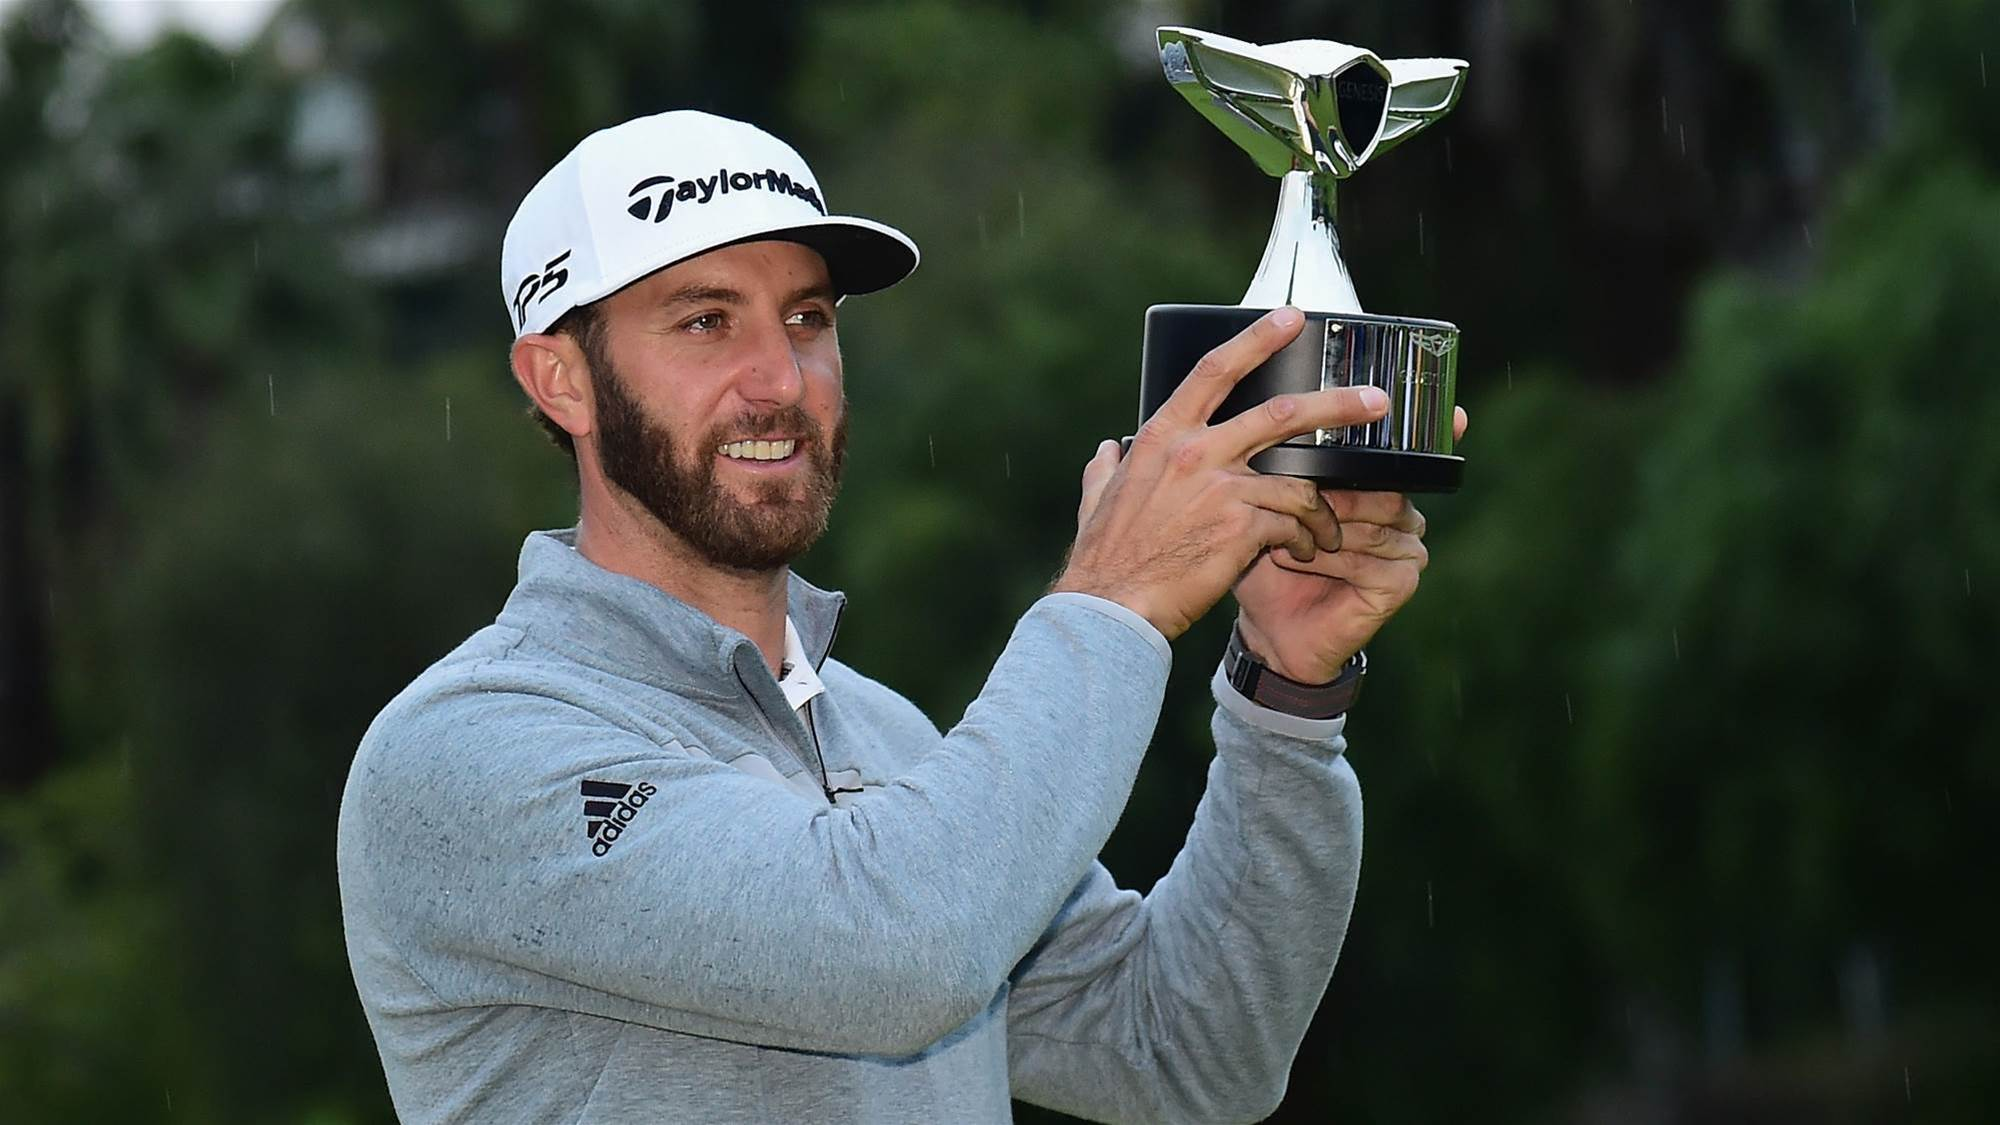 PGA TOUR: Johnson unseats Day as World No.1 with LA win